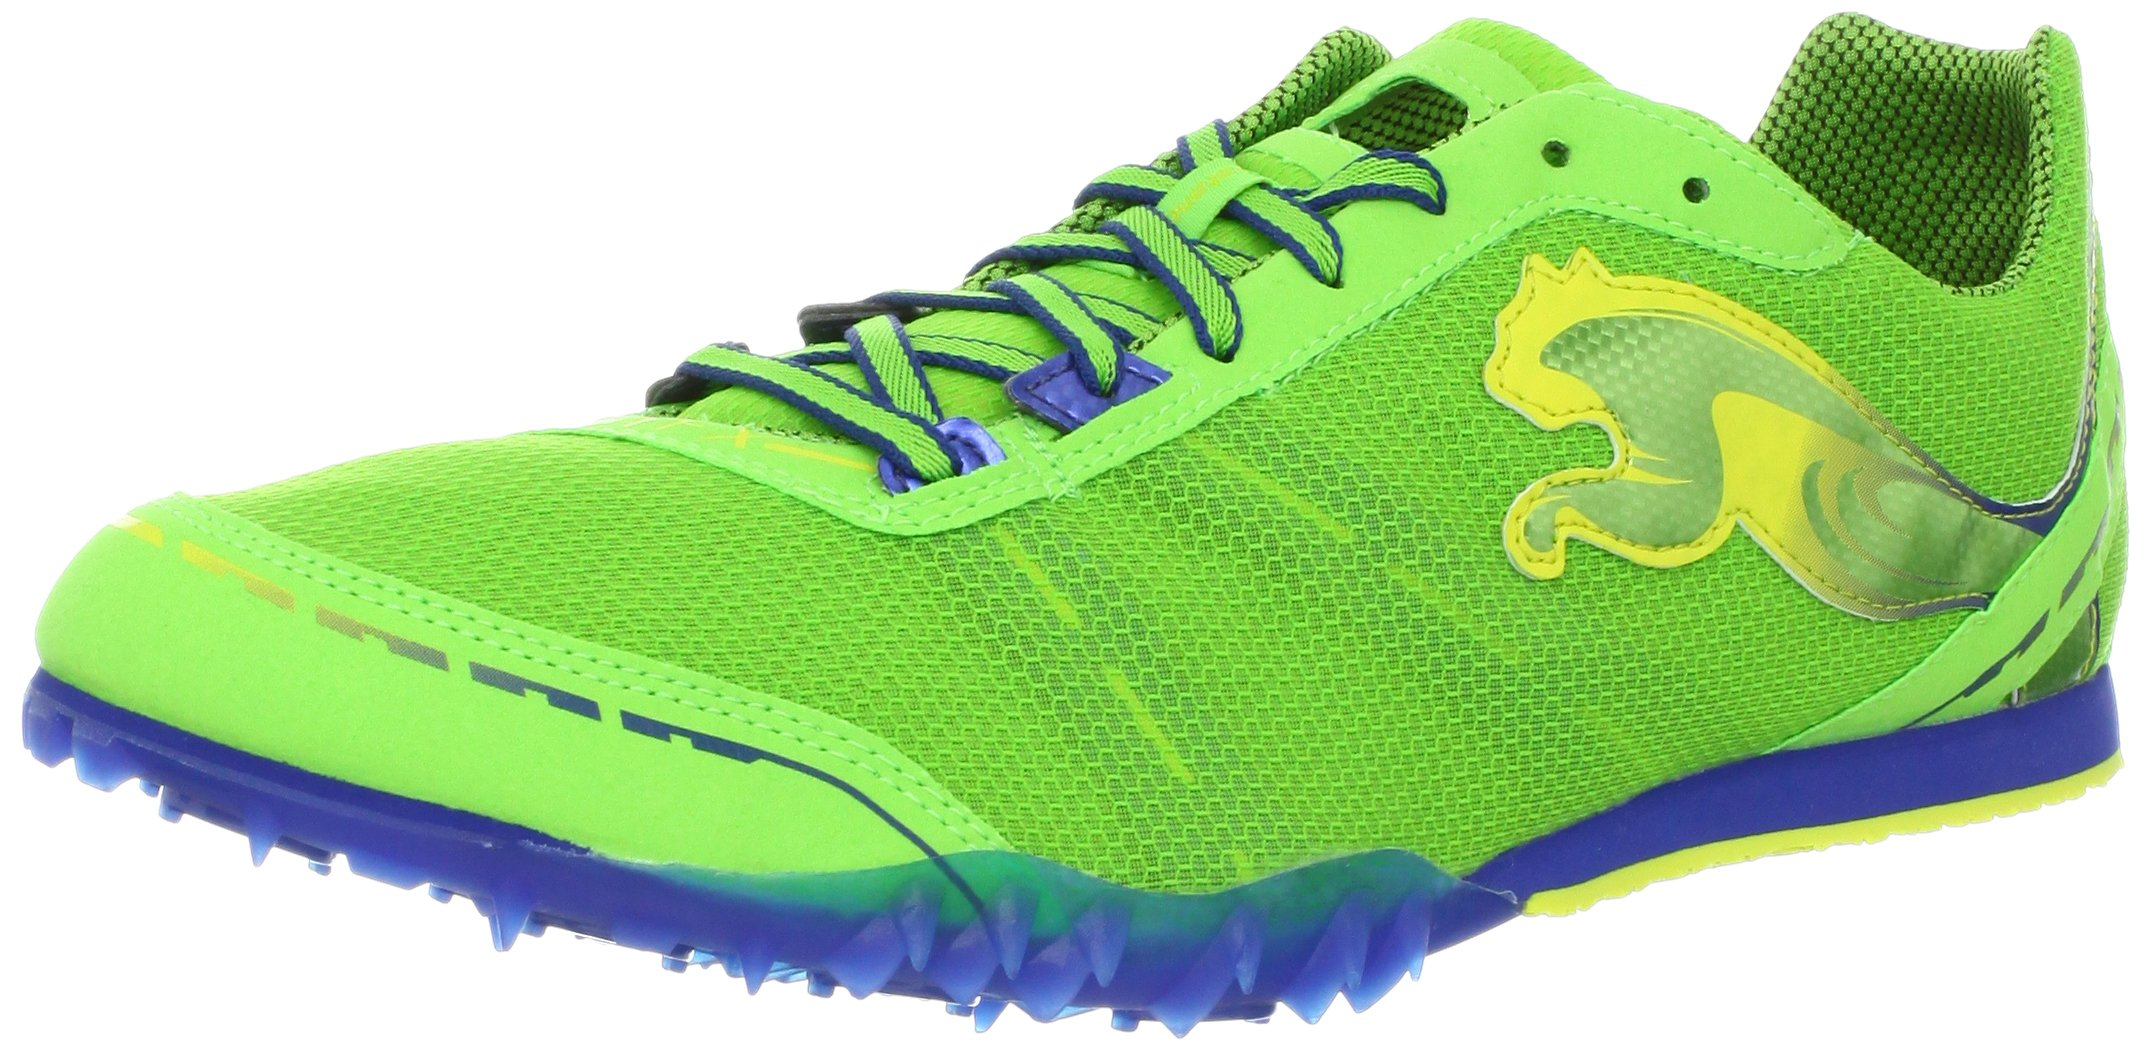 PUMA Men's TFX Distance V4 Track Shoe,Jasmine Green/Monaco Blue/Fluorescent,13 D US